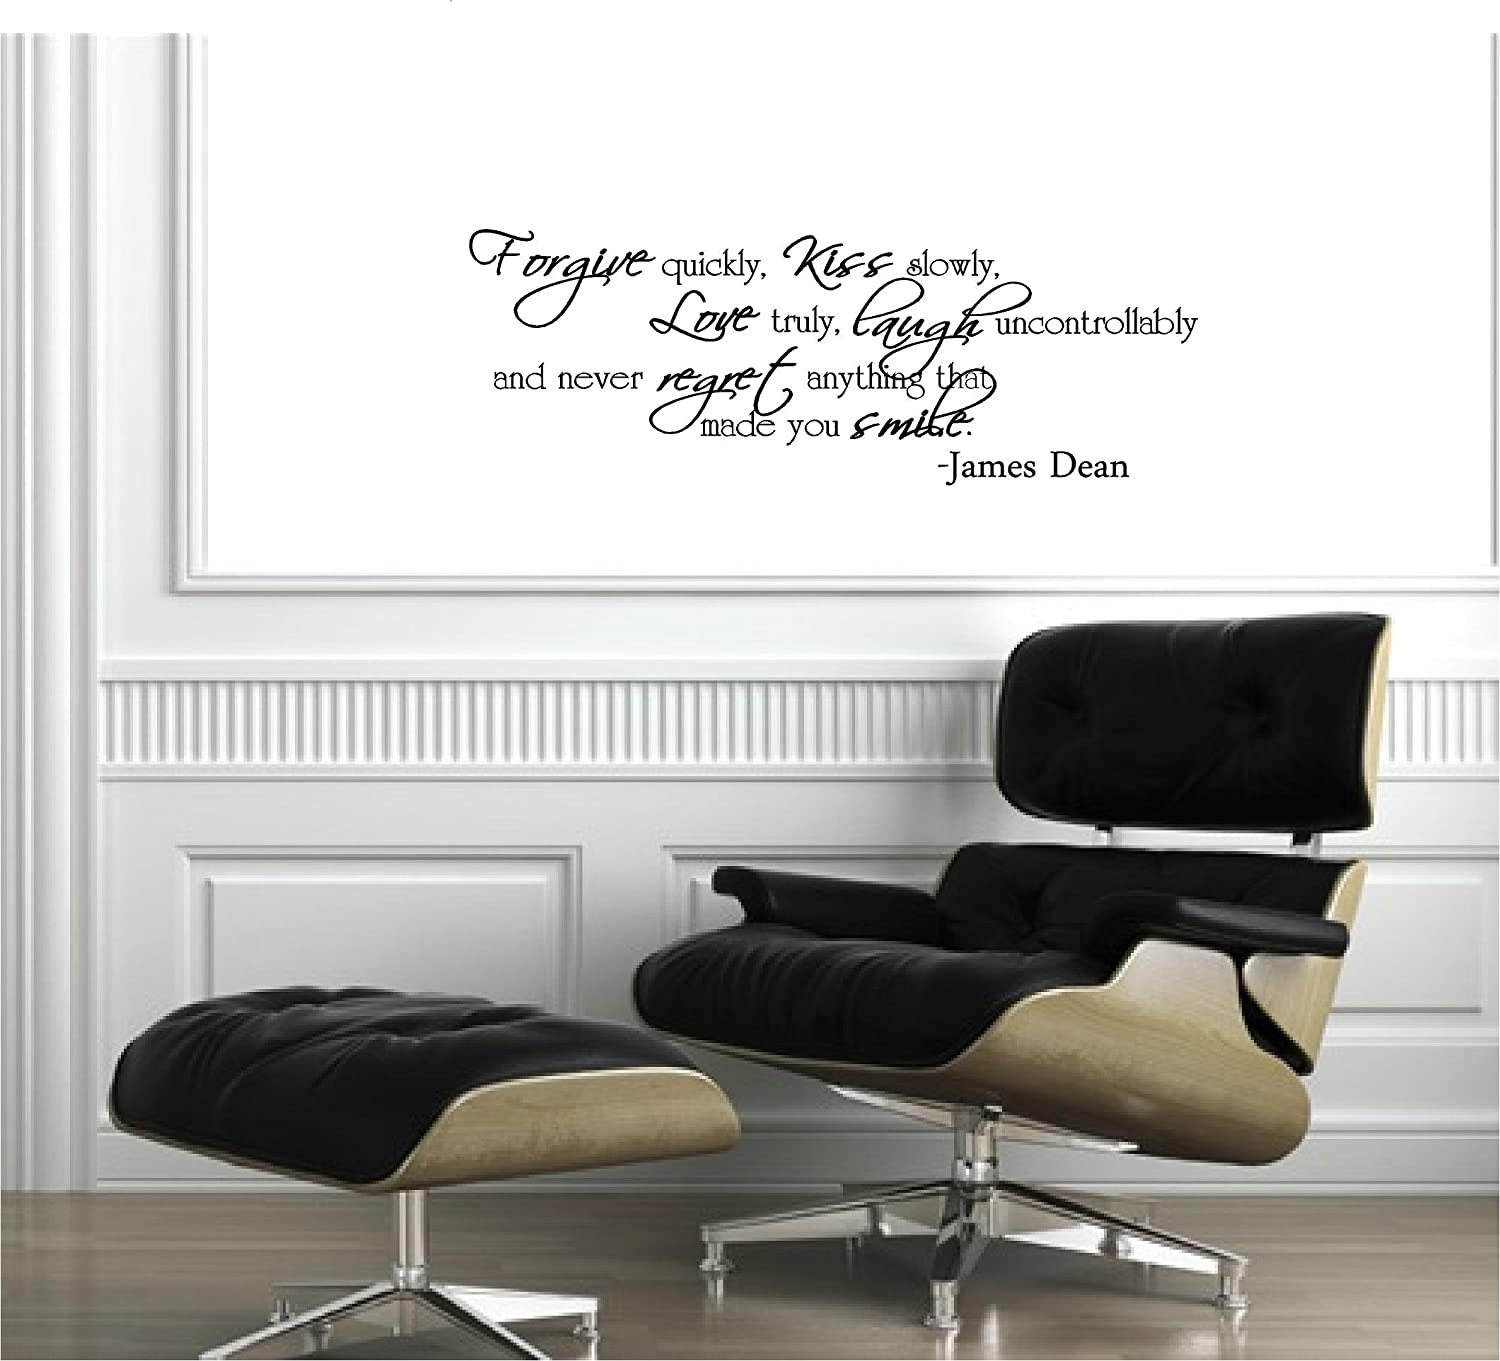 amazon com forgive quickly kiss slowly love truly laugh amazon com forgive quickly kiss slowly love truly laugh uncontrollably and never regret anything that made you smile james dean inspirational wall